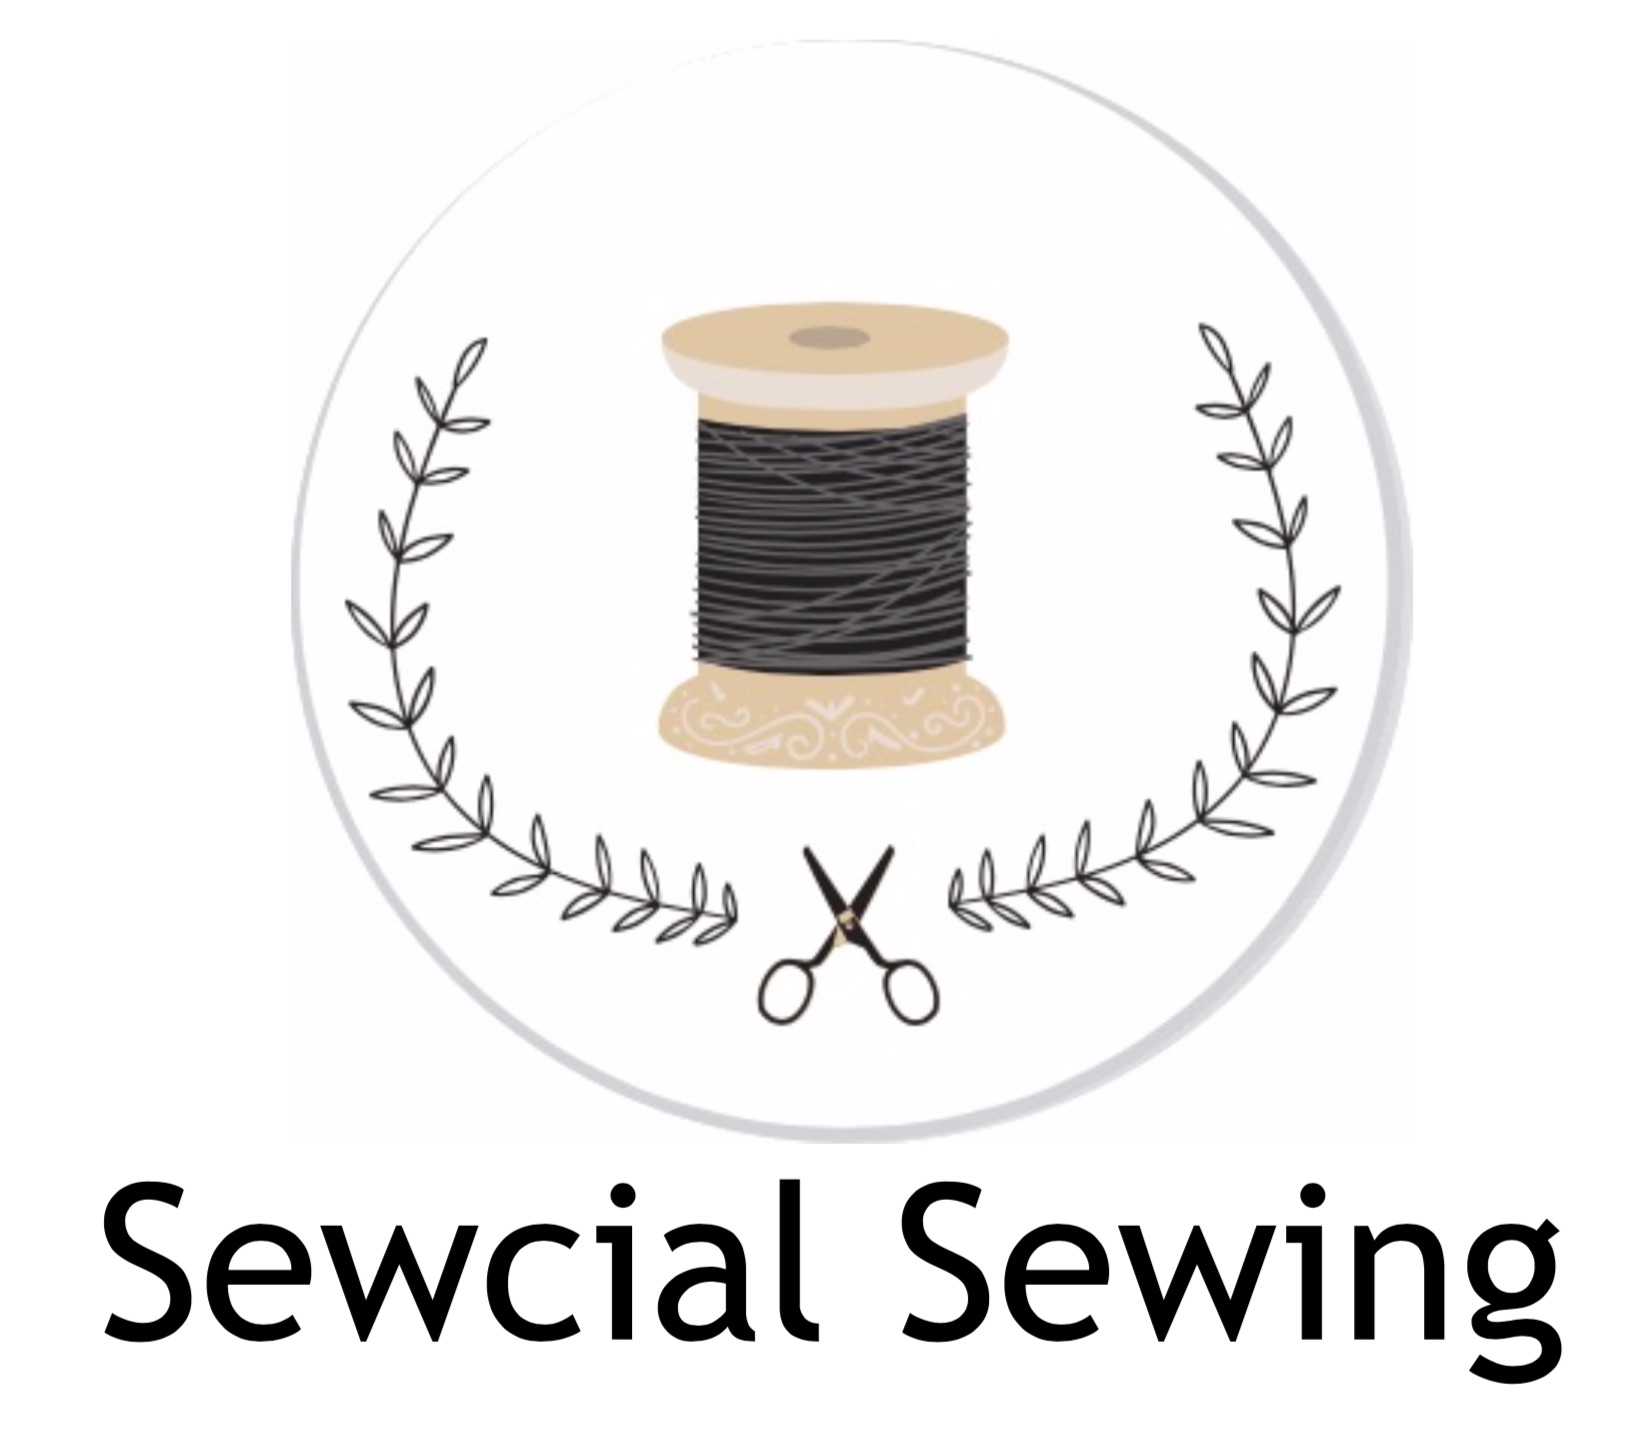 Sewcial Sewing™